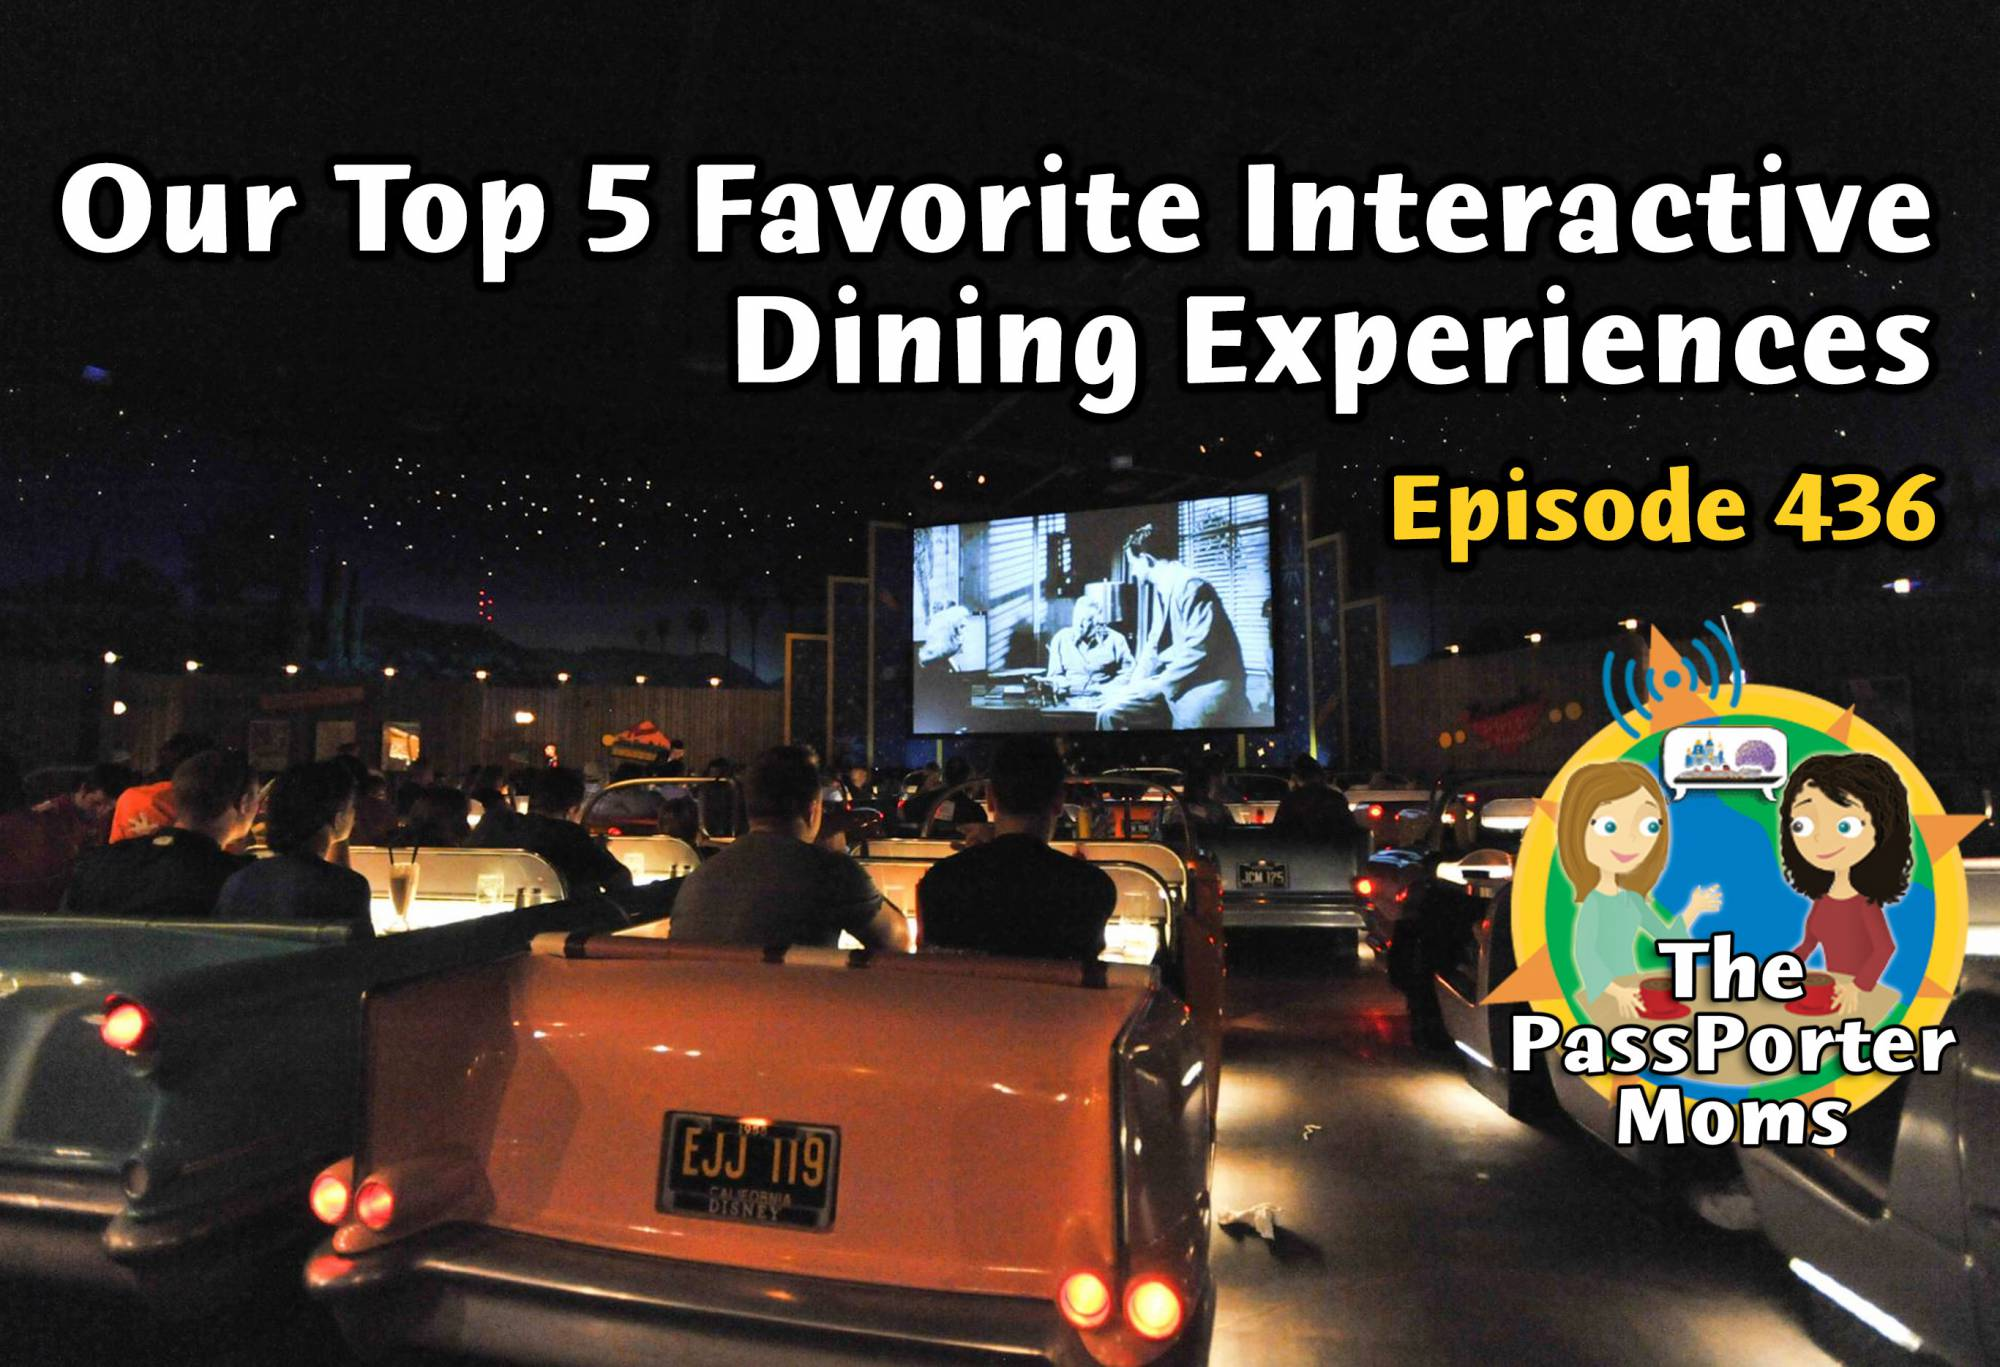 Top 5 Interactive Dining Experiences